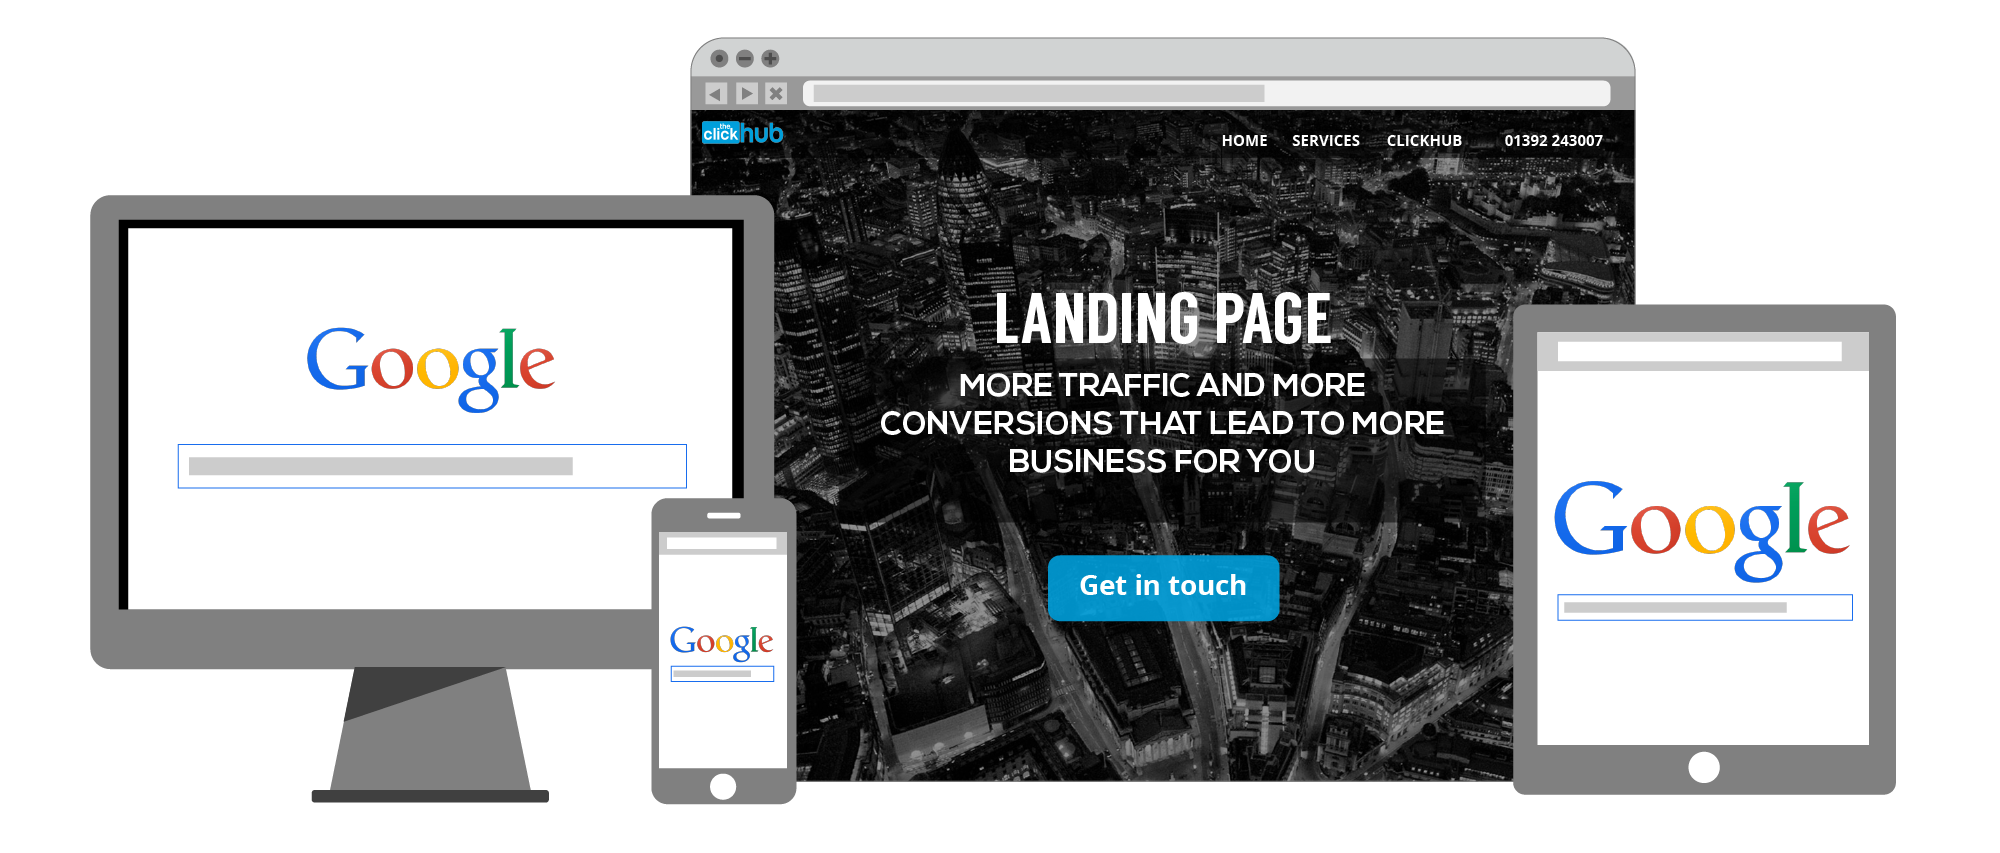 SEO services and SEO Exeter - graphic showing landing page